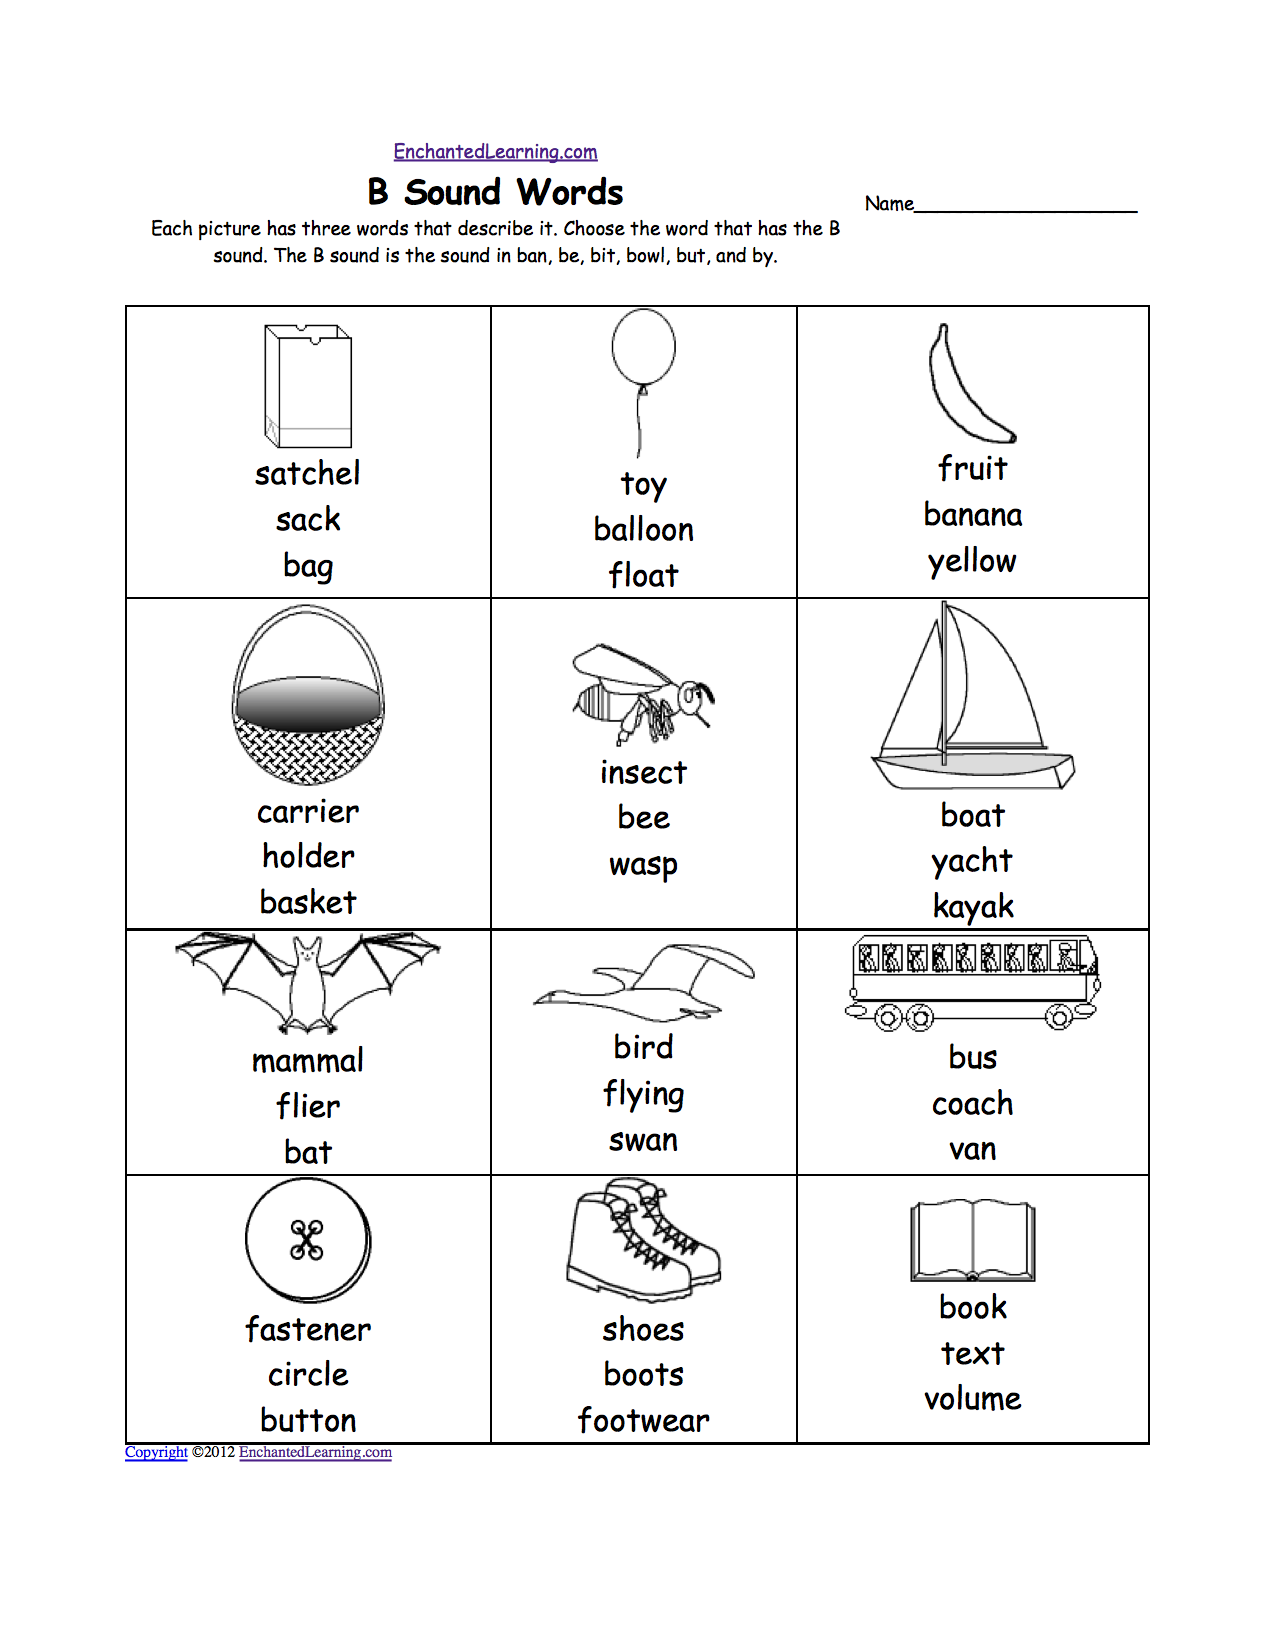 Weirdmailus  Mesmerizing Phonics Worksheets Multiple Choice Worksheets To Print  With Gorgeous Quotbquot Sound Phonics Worksheet Multiple Choice Each Picture Has Three Words That Describe It Choose The Word That Has A Quotbquot Sound The Quotbquot Sound Is The Sound  With Amazing Grade  Math Word Problems Worksheets Also Find Hidden Objects Worksheet In Addition Esl Homework Worksheets And Free Proportion Worksheets As Well As Key Stage  English Worksheets Free Additionally Dividing Fractions With Mixed Numbers Worksheets From Enchantedlearningcom With Weirdmailus  Gorgeous Phonics Worksheets Multiple Choice Worksheets To Print  With Amazing Quotbquot Sound Phonics Worksheet Multiple Choice Each Picture Has Three Words That Describe It Choose The Word That Has A Quotbquot Sound The Quotbquot Sound Is The Sound  And Mesmerizing Grade  Math Word Problems Worksheets Also Find Hidden Objects Worksheet In Addition Esl Homework Worksheets From Enchantedlearningcom